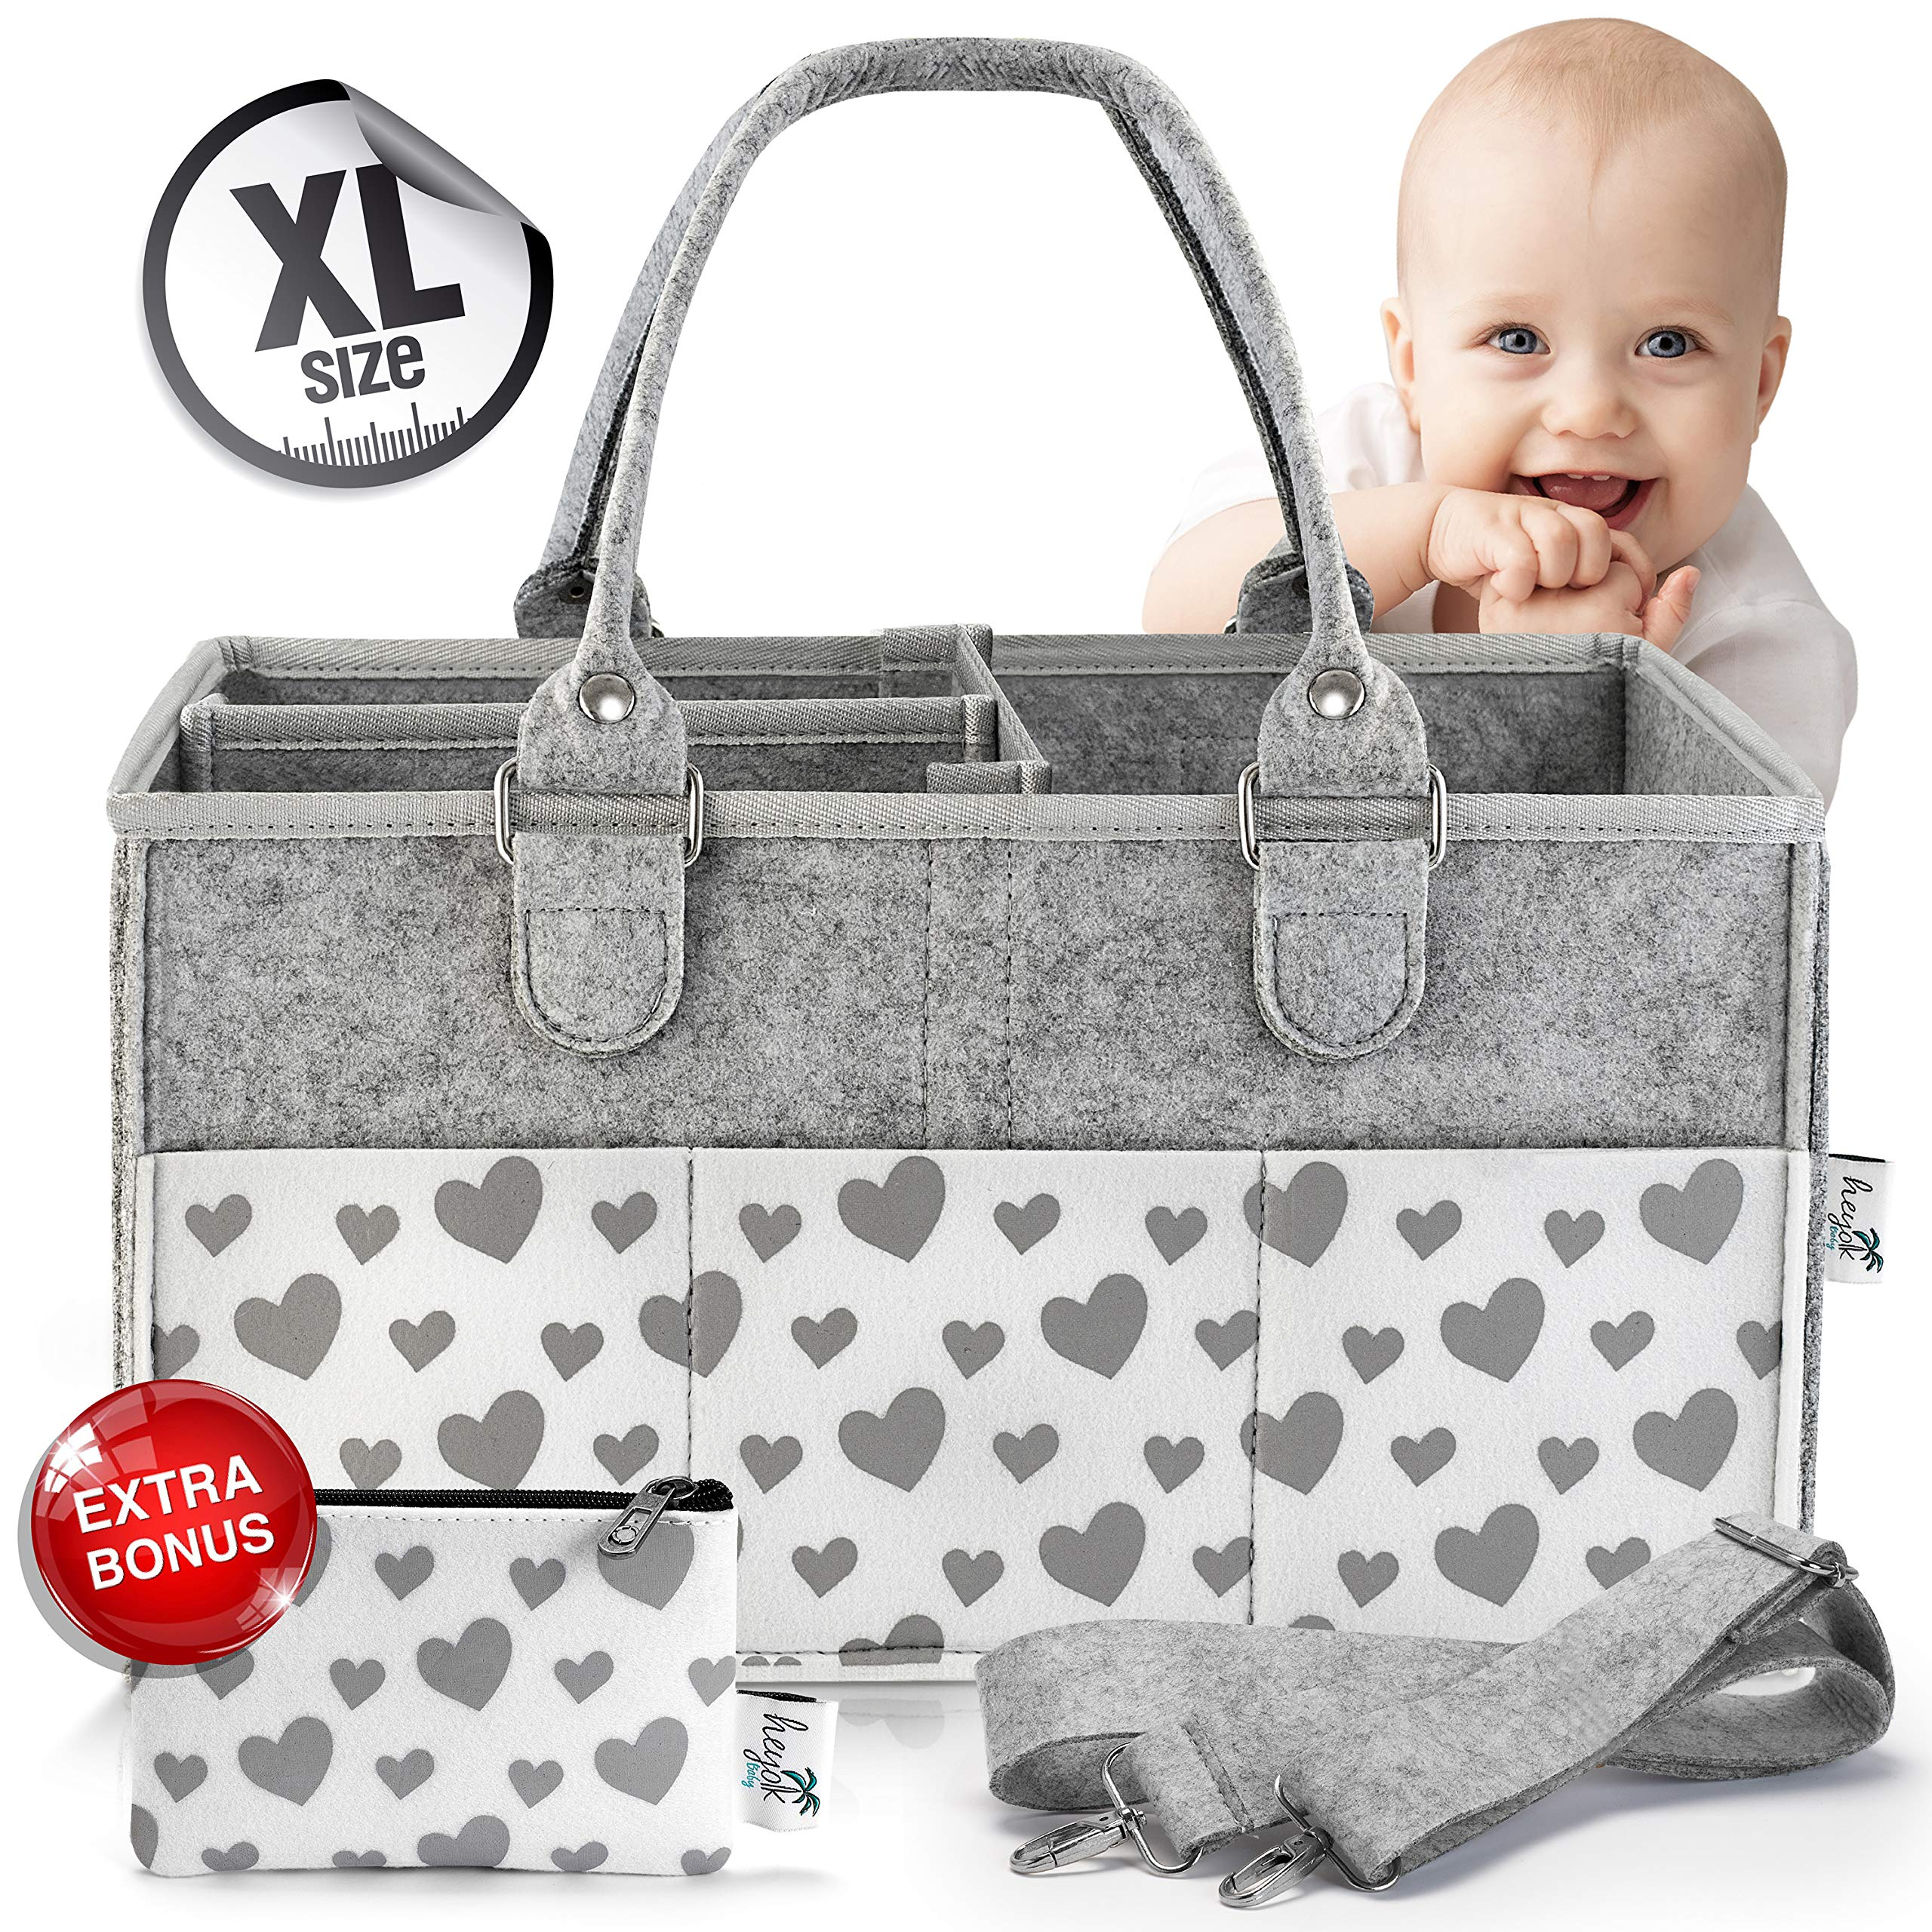 Baby Diaper Caddy Organizer for All Changing Table Necessities. Unisex - Large, Sturdy, Quality w/ 10 Outer Pockets, Regular and Travel Handles, Double Bottom - Bonus Small Item Wallet - Gray Hearts by HEYOK Baby